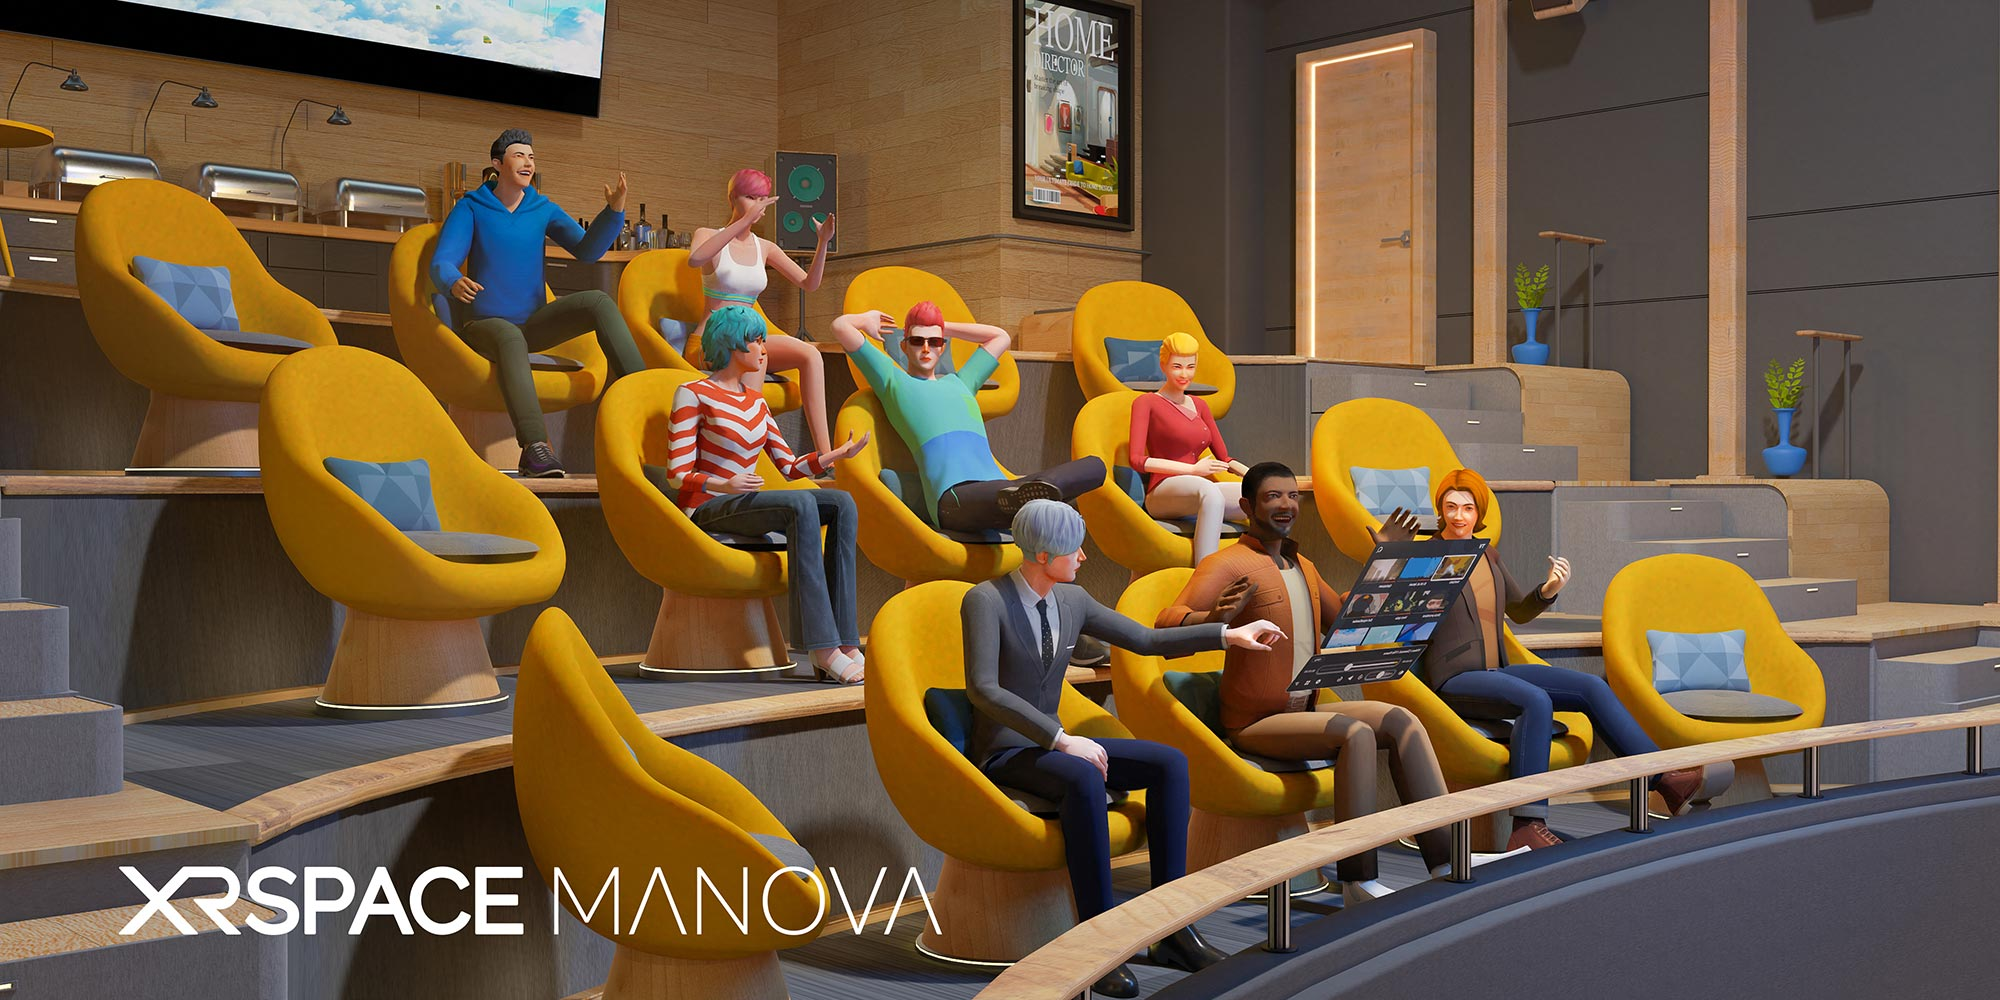 XRSpace Manova: a VR headset for Christmas